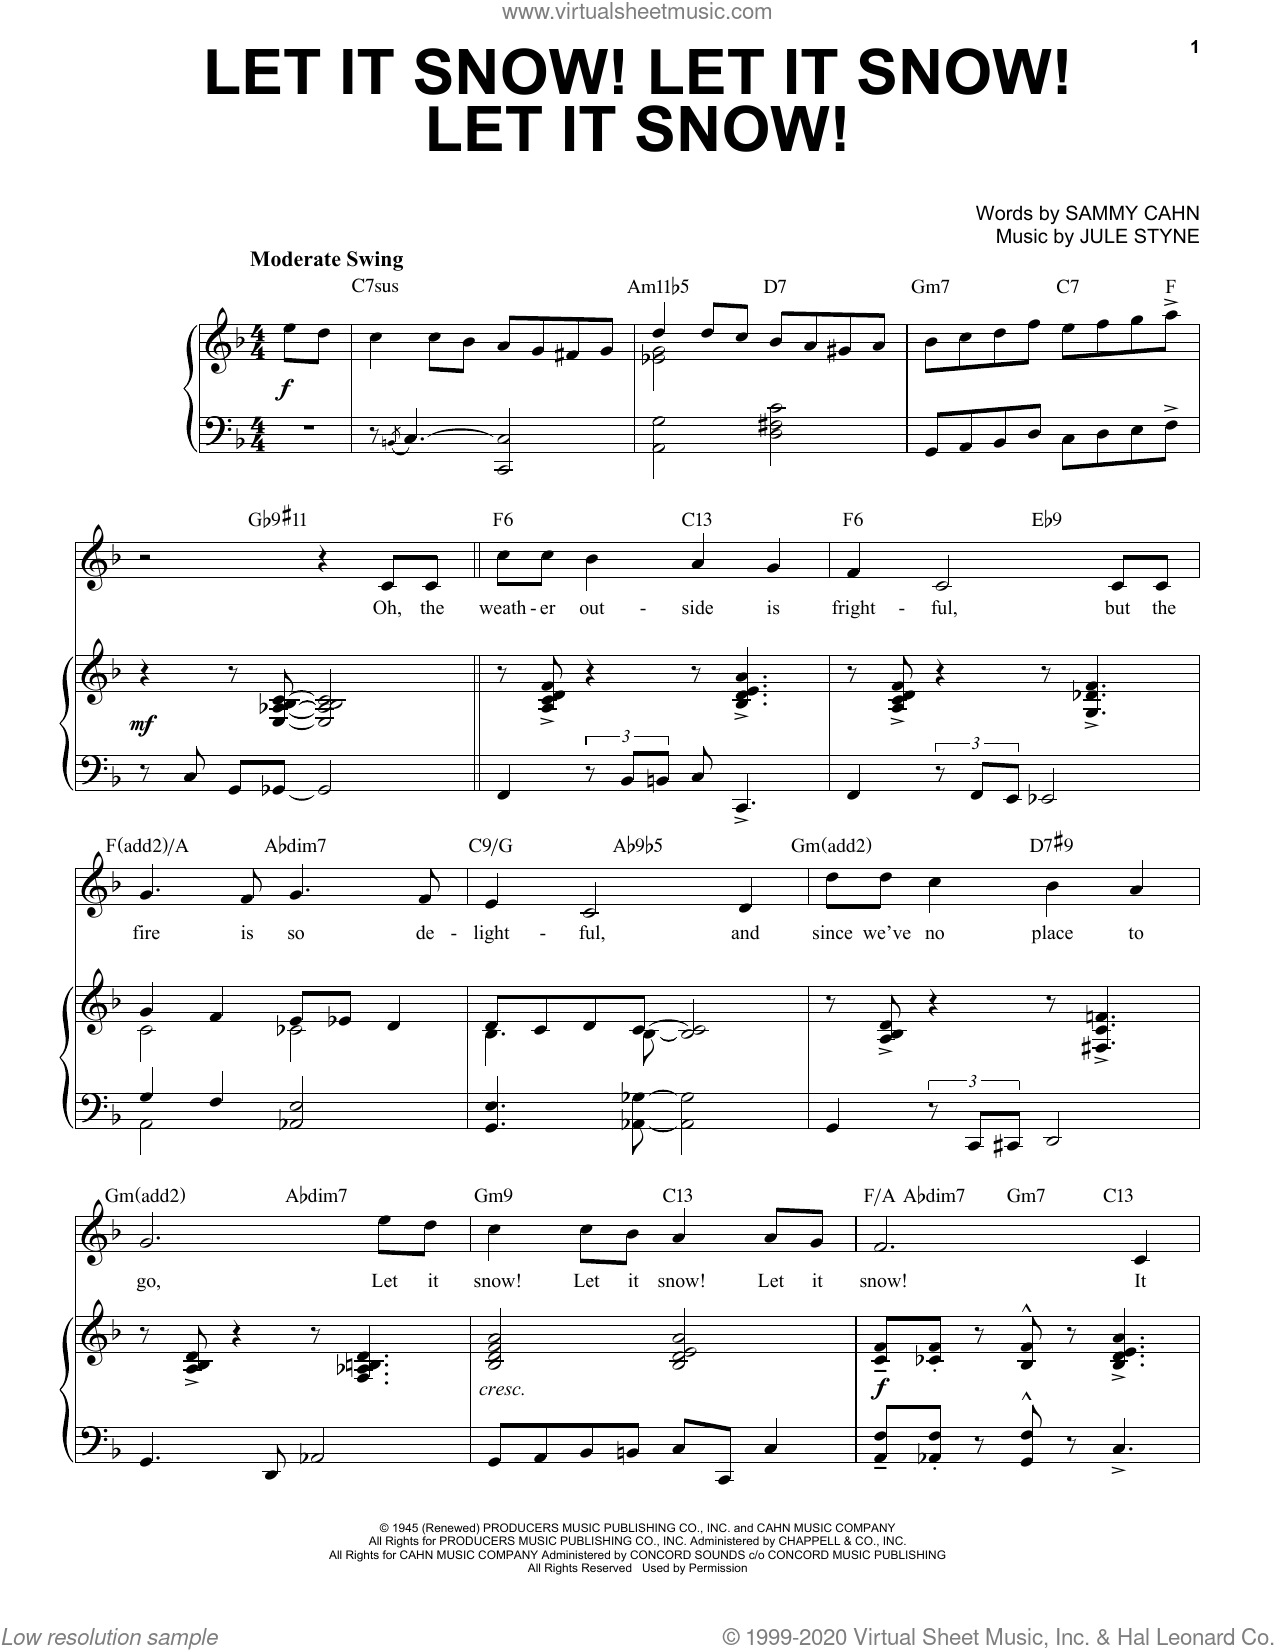 Let It Snow! Let It Snow! Let It Snow! [Jazz Version] (arr. Brent Edstrom) sheet music for voice and piano (High Voice) by Sammy Cahn, Brent Edstrom and Jule Styne, intermediate skill level